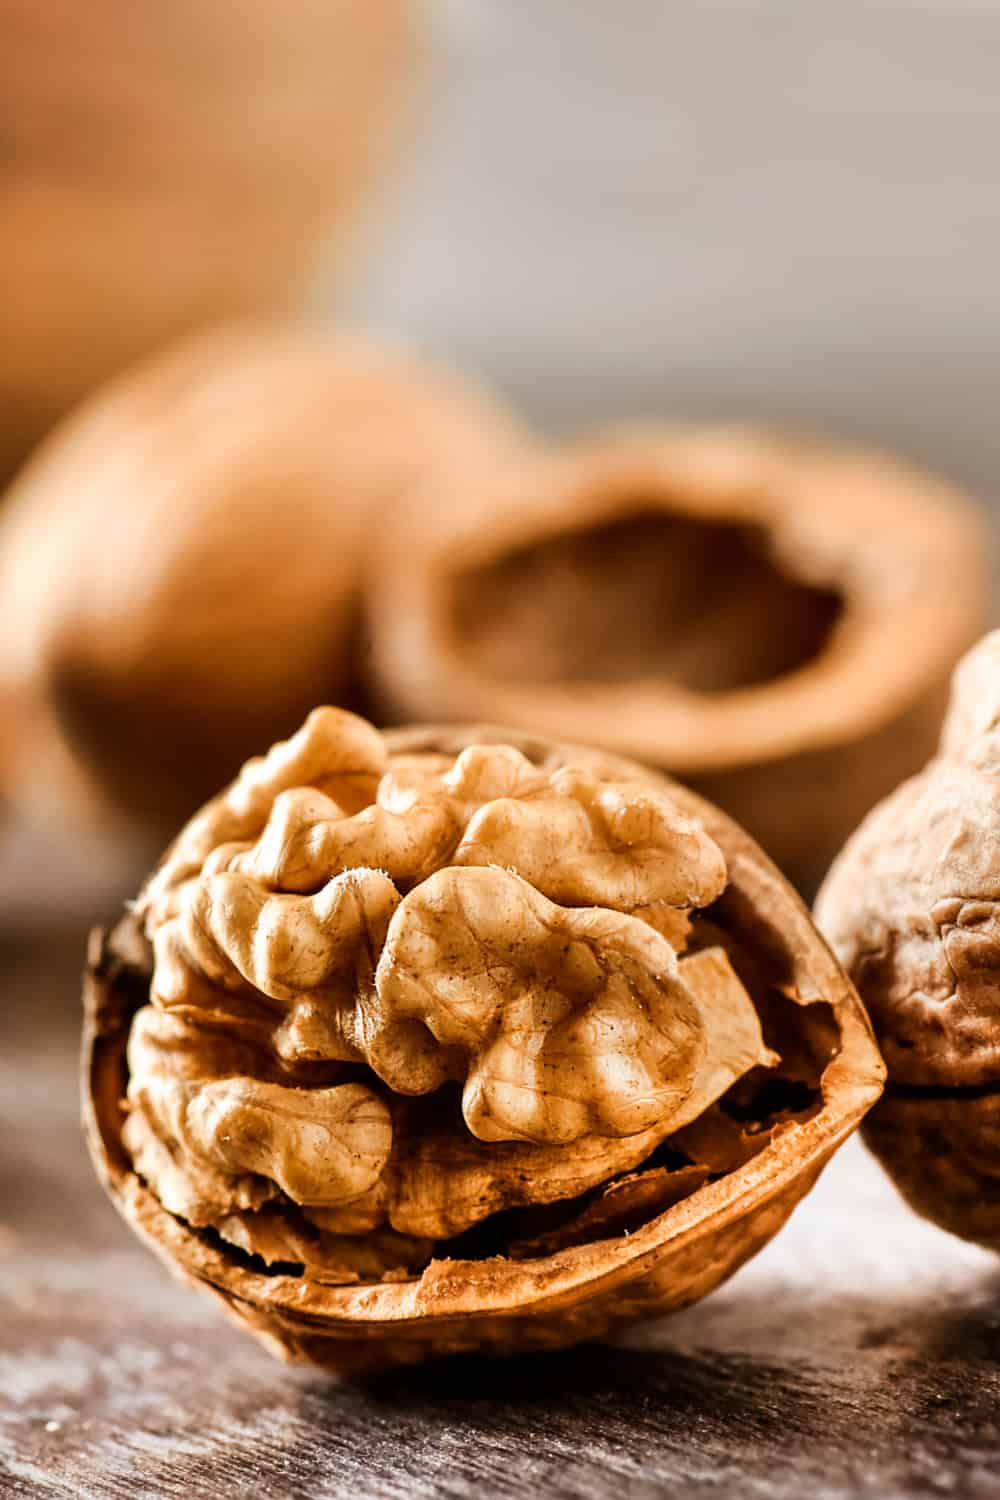 The Risk of Consuming Expired Walnuts